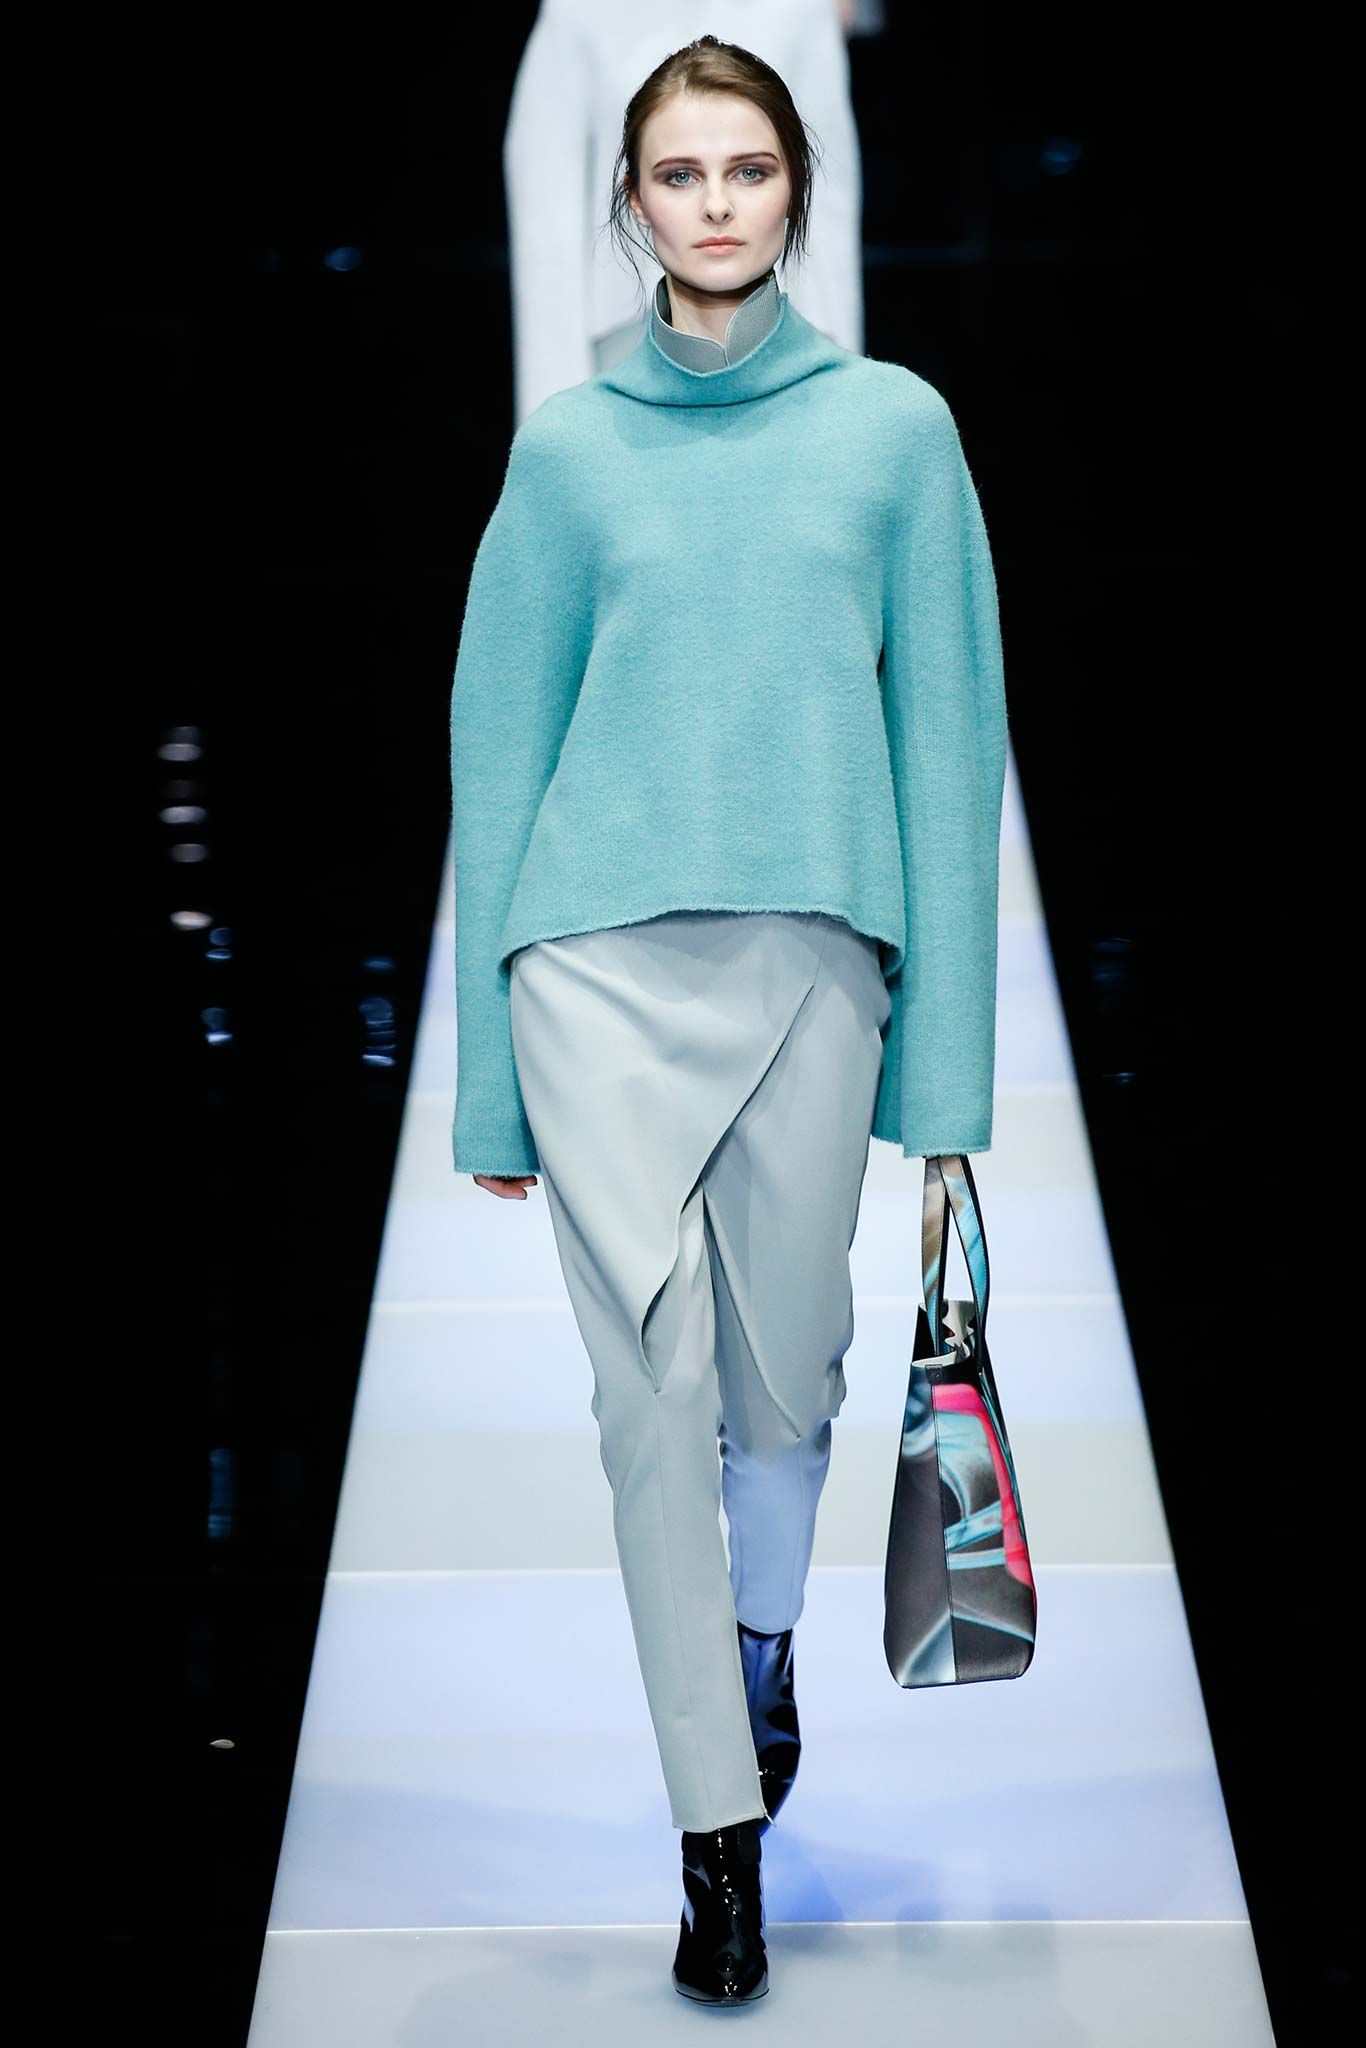 529db861088 Giorgio Armani - Fall 2015 Ready-to-Wear - Look 28 of 86   Pre 2016 ...